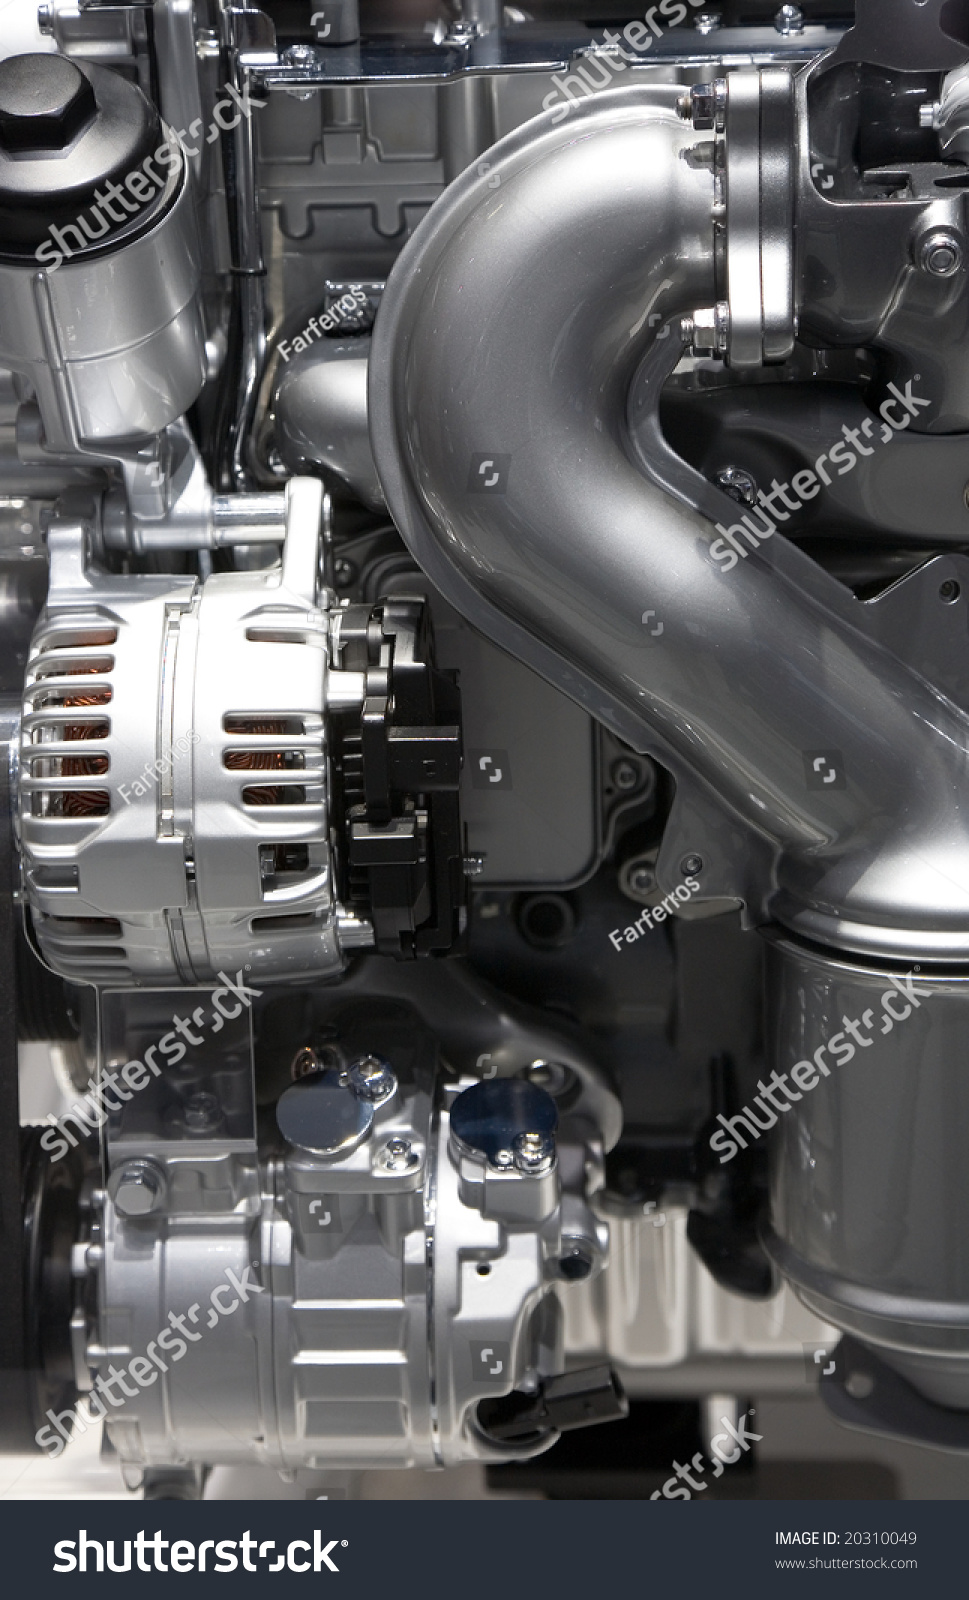 Elements New Modern Automobile Engine Shown Stock Photo 20310049 ...